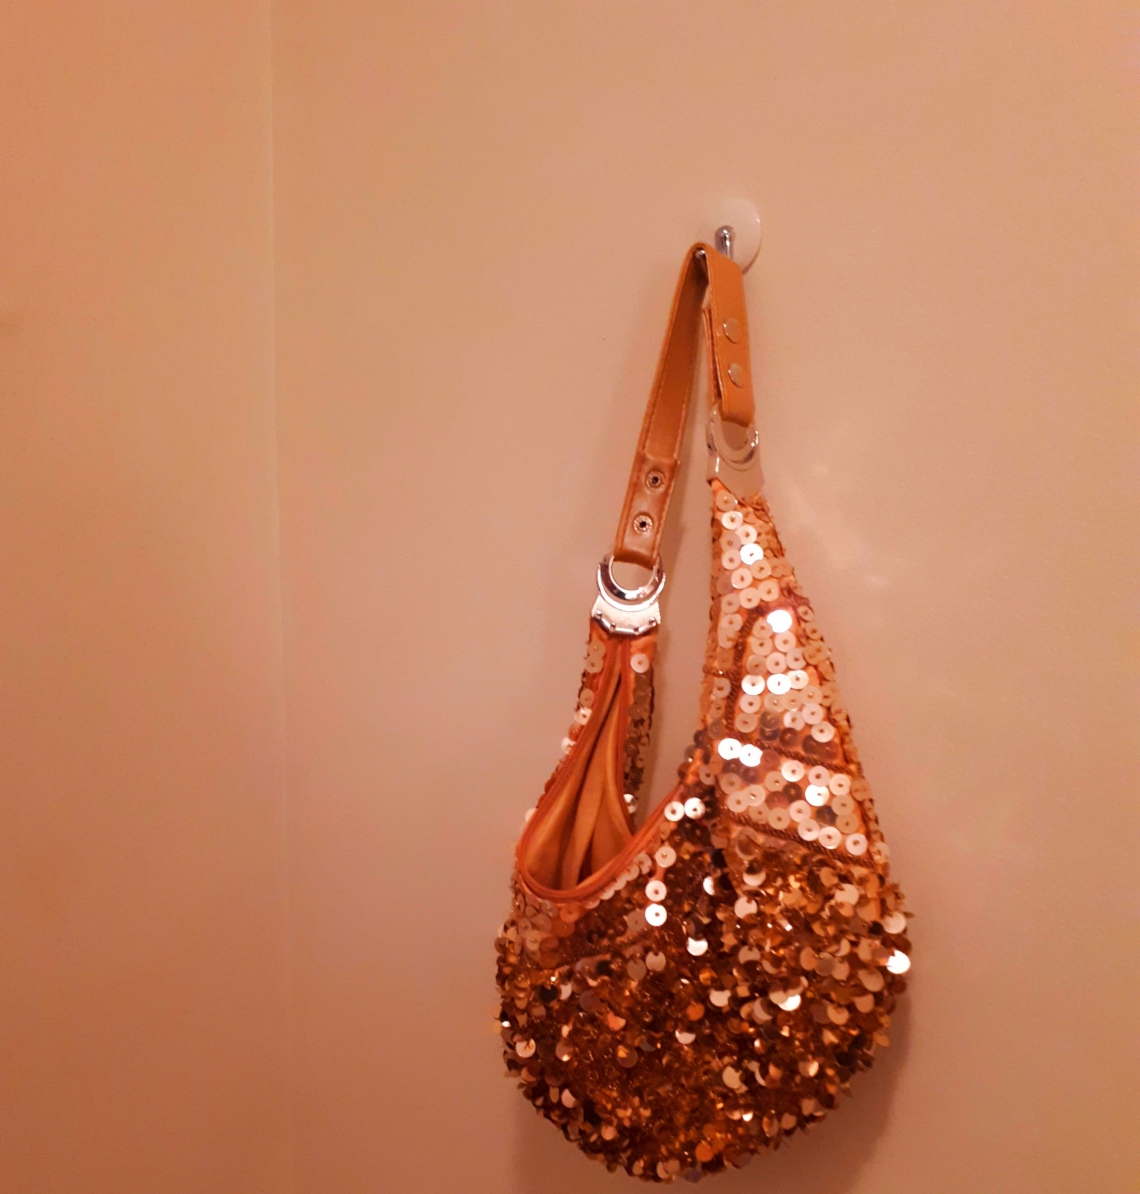 sequined bag hanging on wall